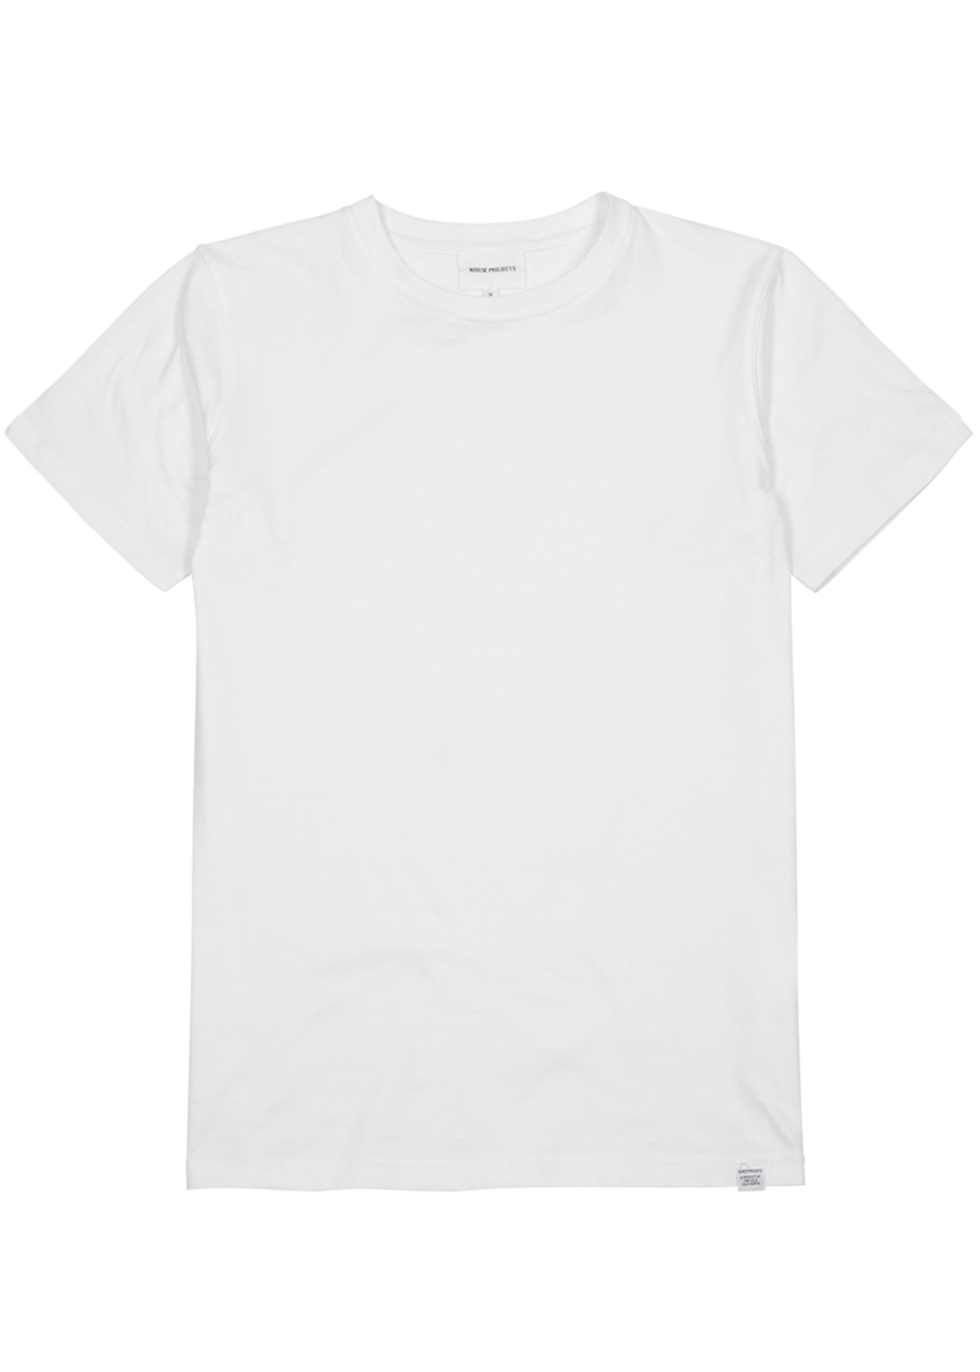 NORSE PROJECTS NEILS WHITE COTTON T-SHIRT